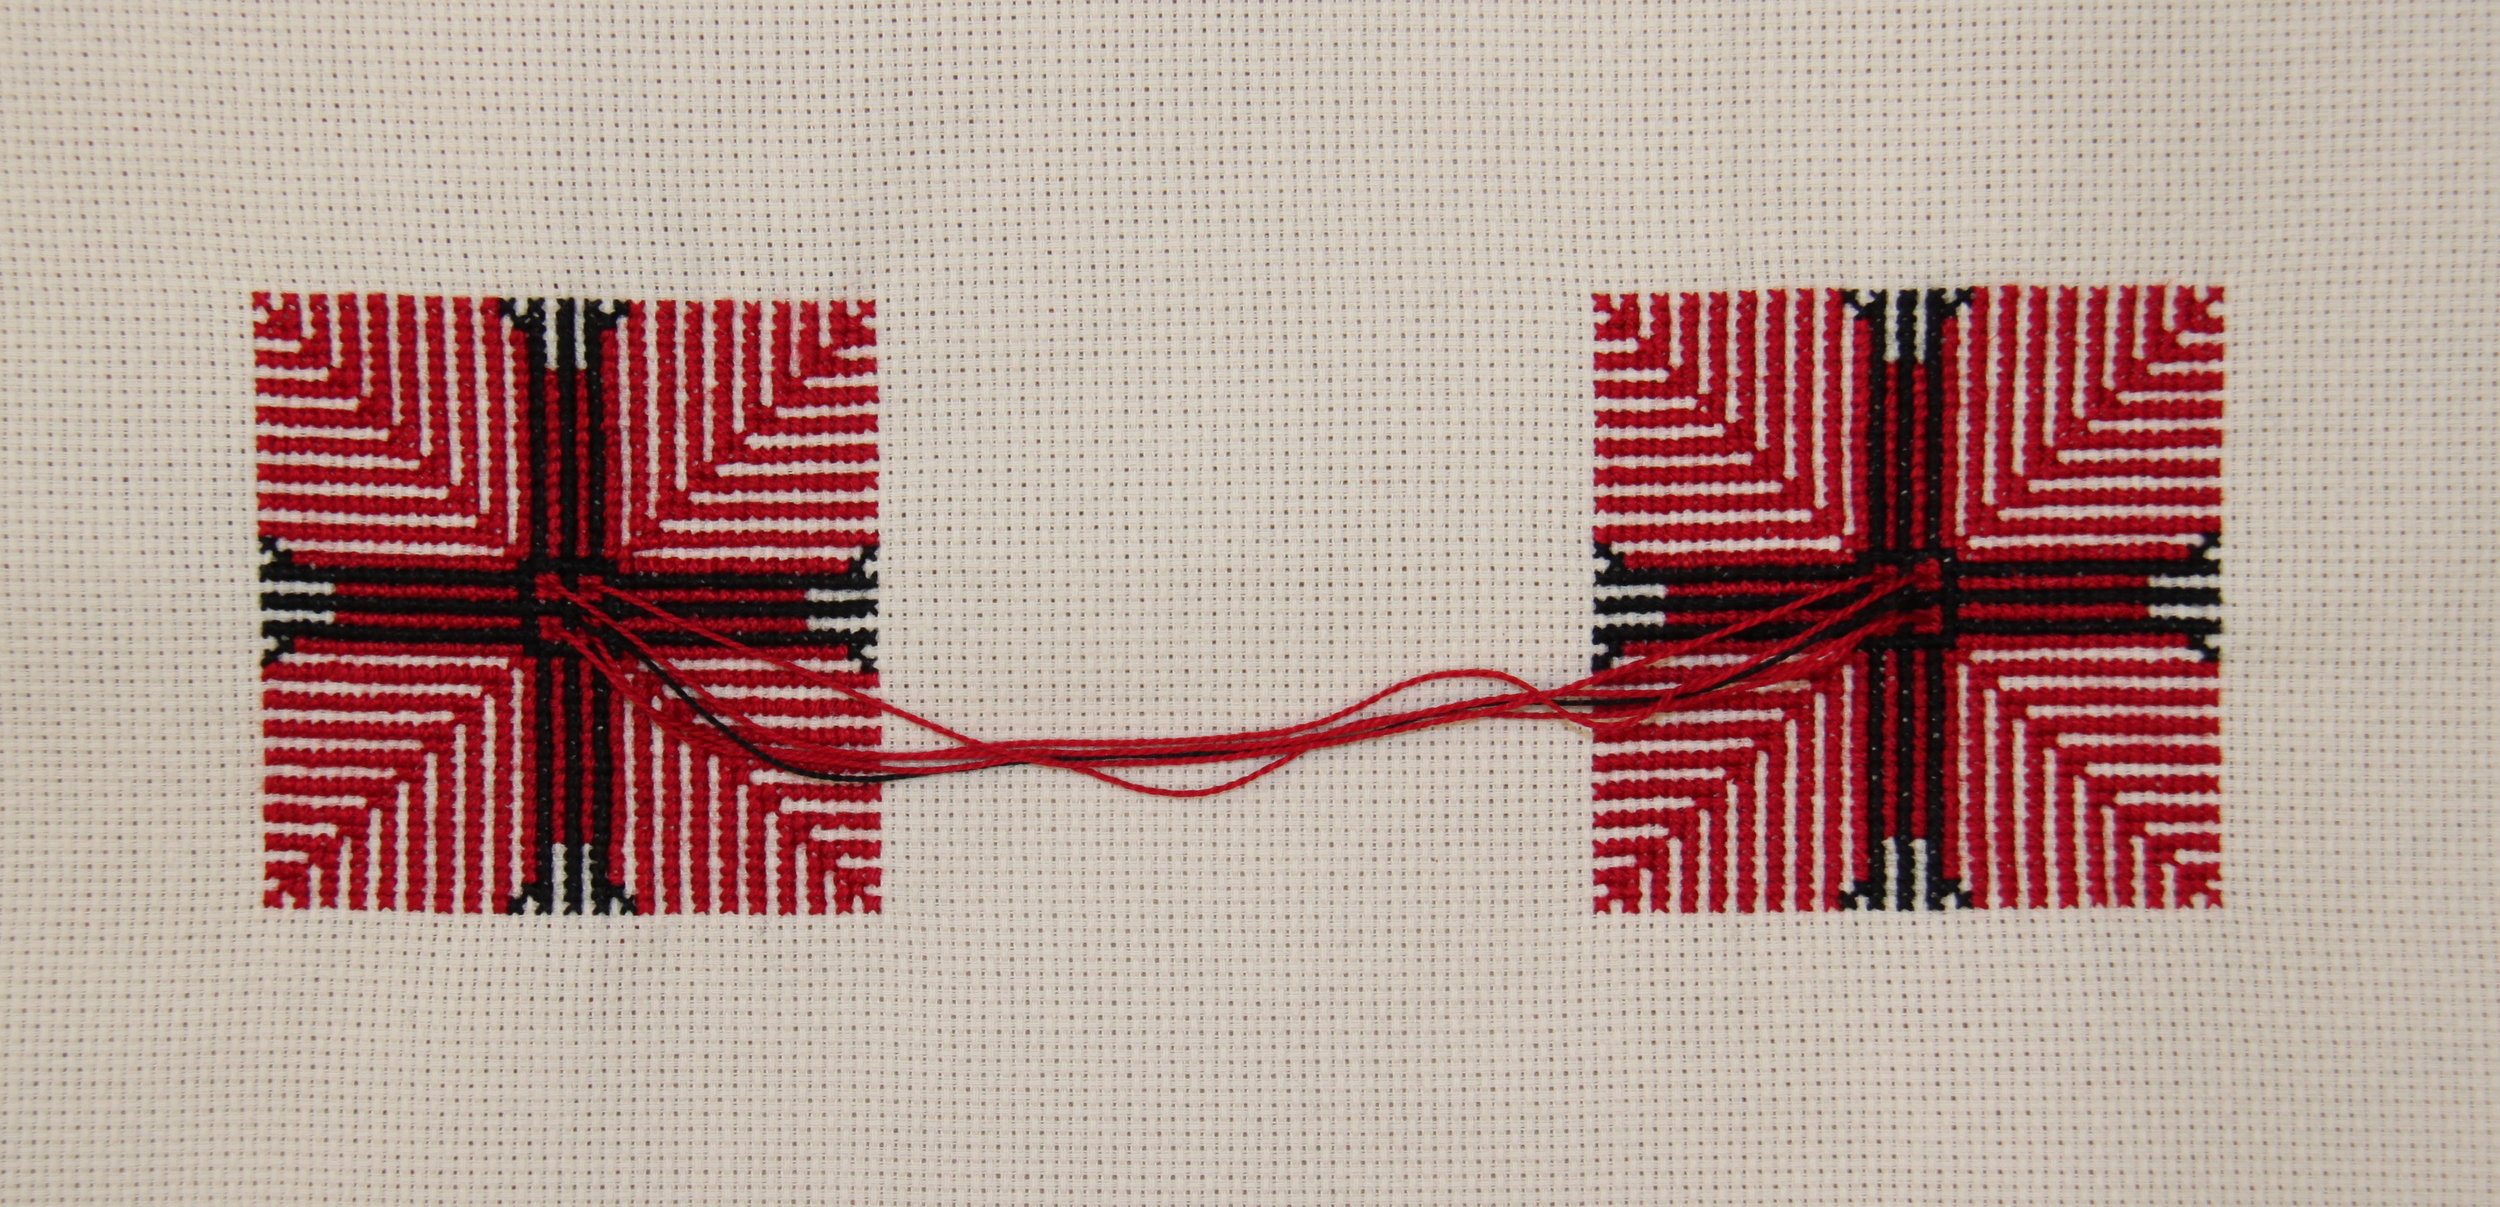 ENTANGLEMENT  Cotton thread on cotton fabric. 15 x 30 cm.  Through the medium of Palestinian cross-stitch hand embroidery, two identical yet separate motifs are joined to represent the concept of entanglement. The theory of quantum entanglement states that even if two particles are physically separated, they can still be connected. Karmic entanglement also speaks of the connection, regardless of space or time, between individuals, an individual to a group of people, or an individual to a belief. In this piece, traditional rules of the symbolic language of Palestinian embroidery are broken and a new translation of the motif is formulated. By understanding entanglement in visual or symbolic terms, an opportunity is created to consider the connecting force or frequency and recognise it as love. Threads emerge from and connect to the four squares centred in each motif, resembling the four chambers of the heart, removing the illusion of separateness while leaving behind the ultimate essence of oneness.  This piece currently on display in the Made In Tashkeel exhibition at Tashkeel in Dubai until September 10th.   https://www.thenational.ae/arts-culture/art/tashkeel-s-summer-exhibition-celebrating-an-incredible-decade-of-achievement-1.878469